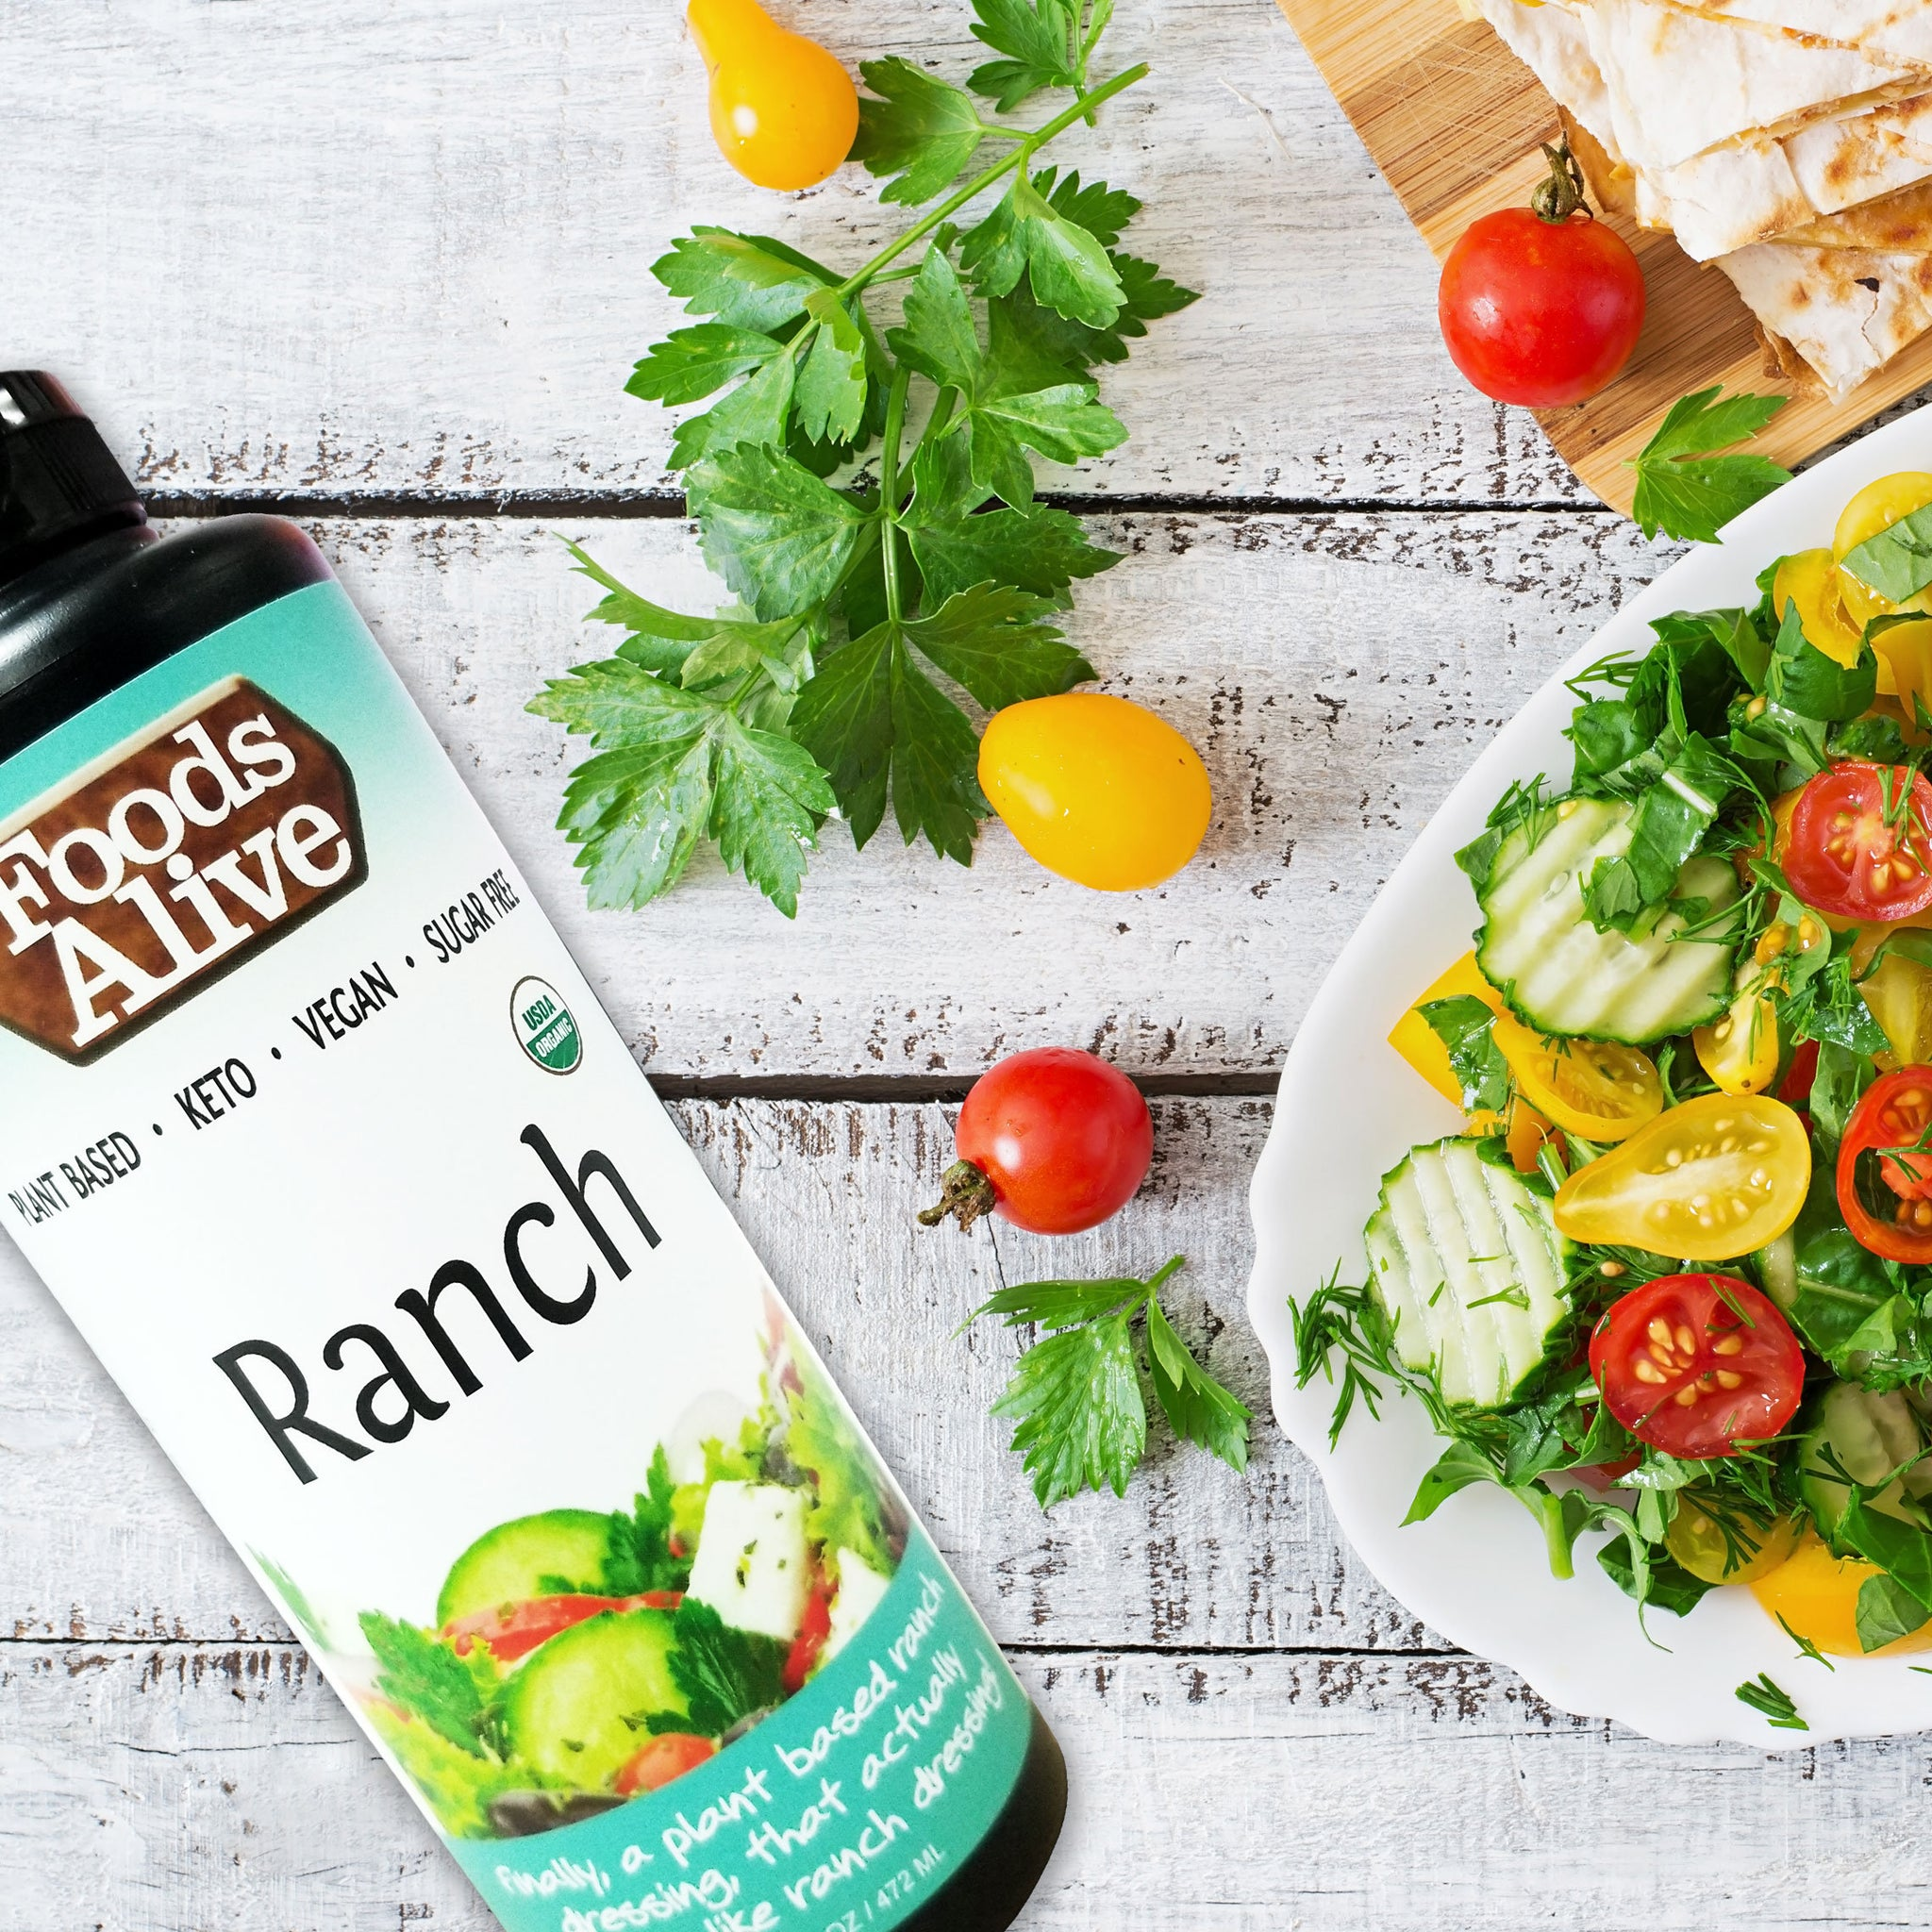 100% Organic Ranch Superfood Dressing, Vegan- 4 oz